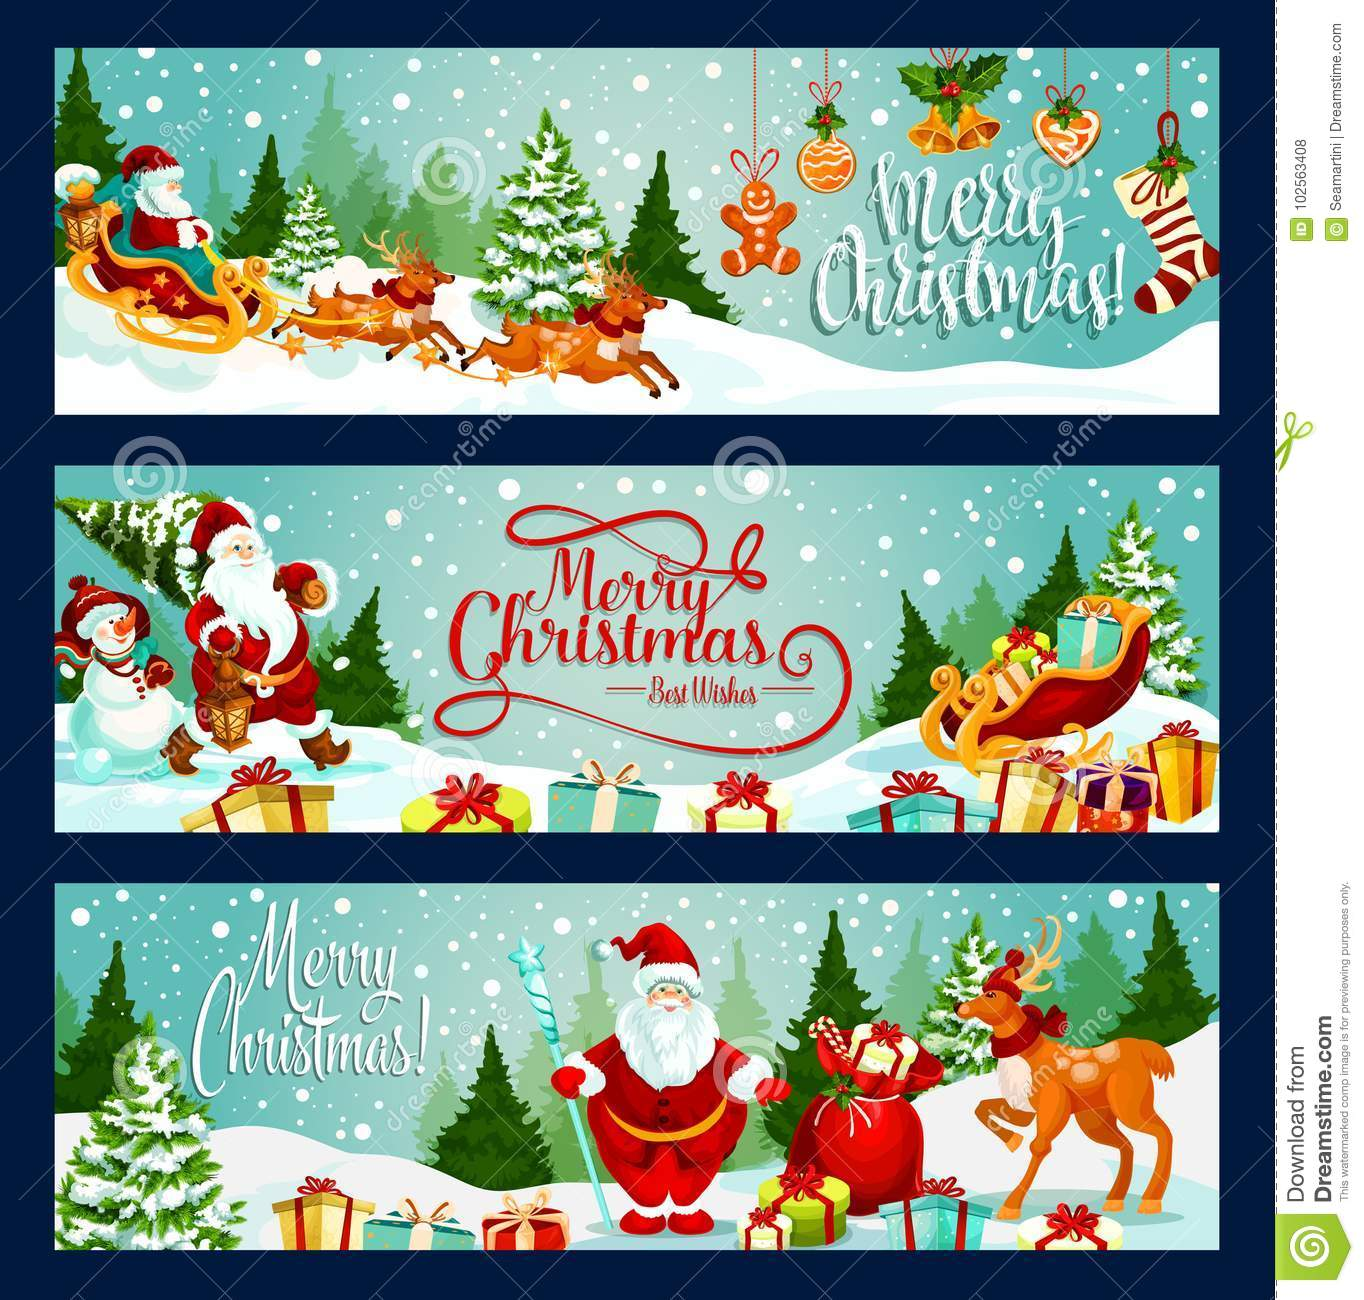 Winter Holiday Banners Lover Banners